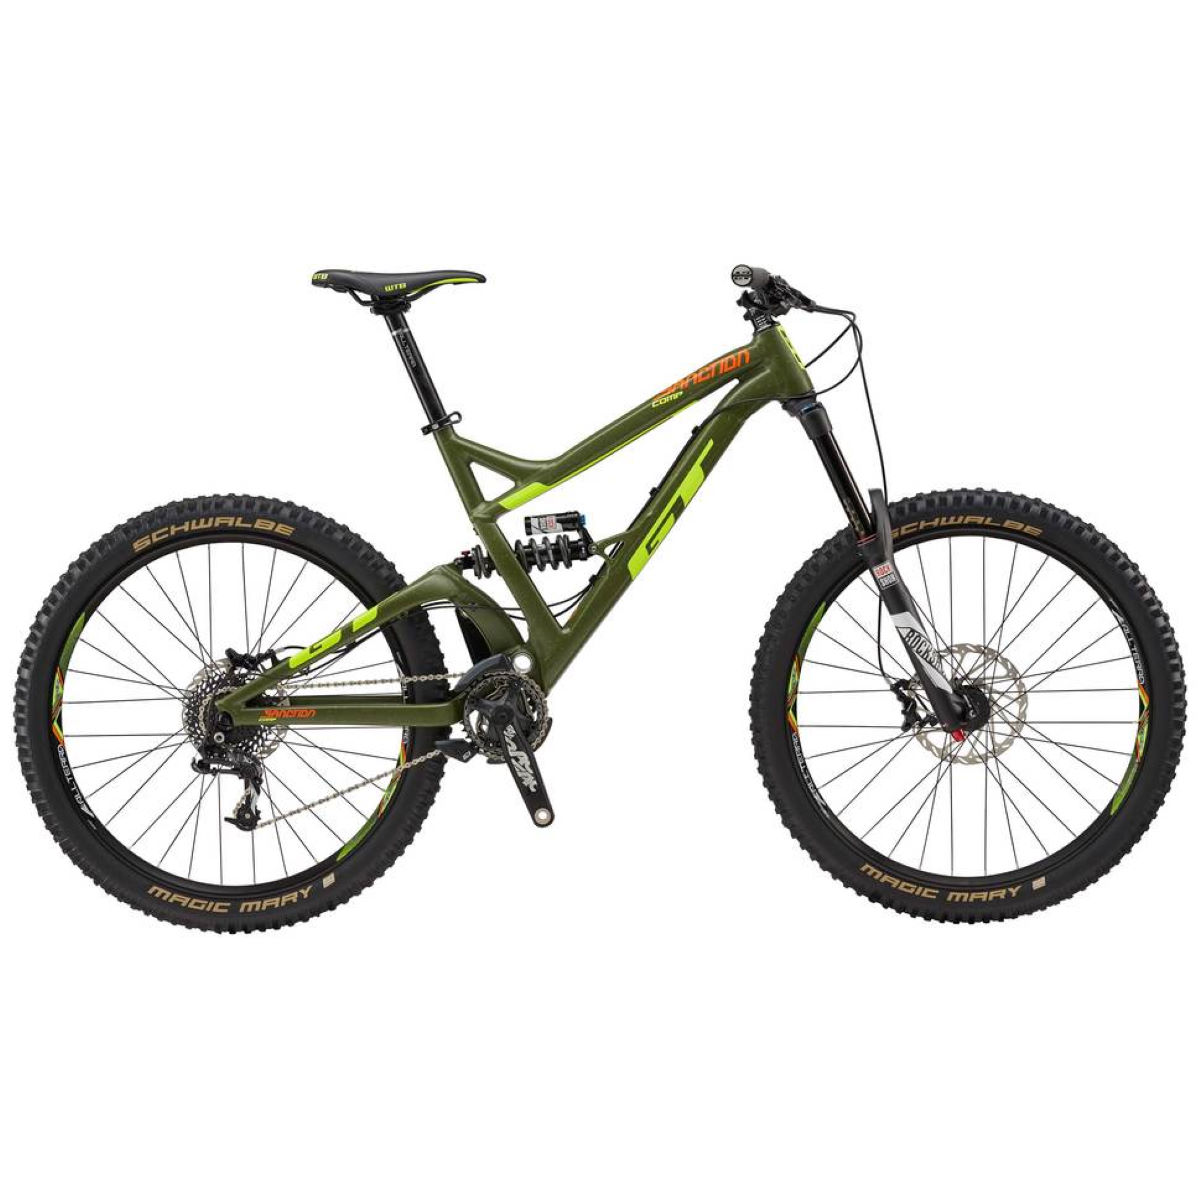 GT Sanction Comp (2017) Mountain Bike Green L Stock B - L Stock Bike Gris foncé VTT tout suspendu